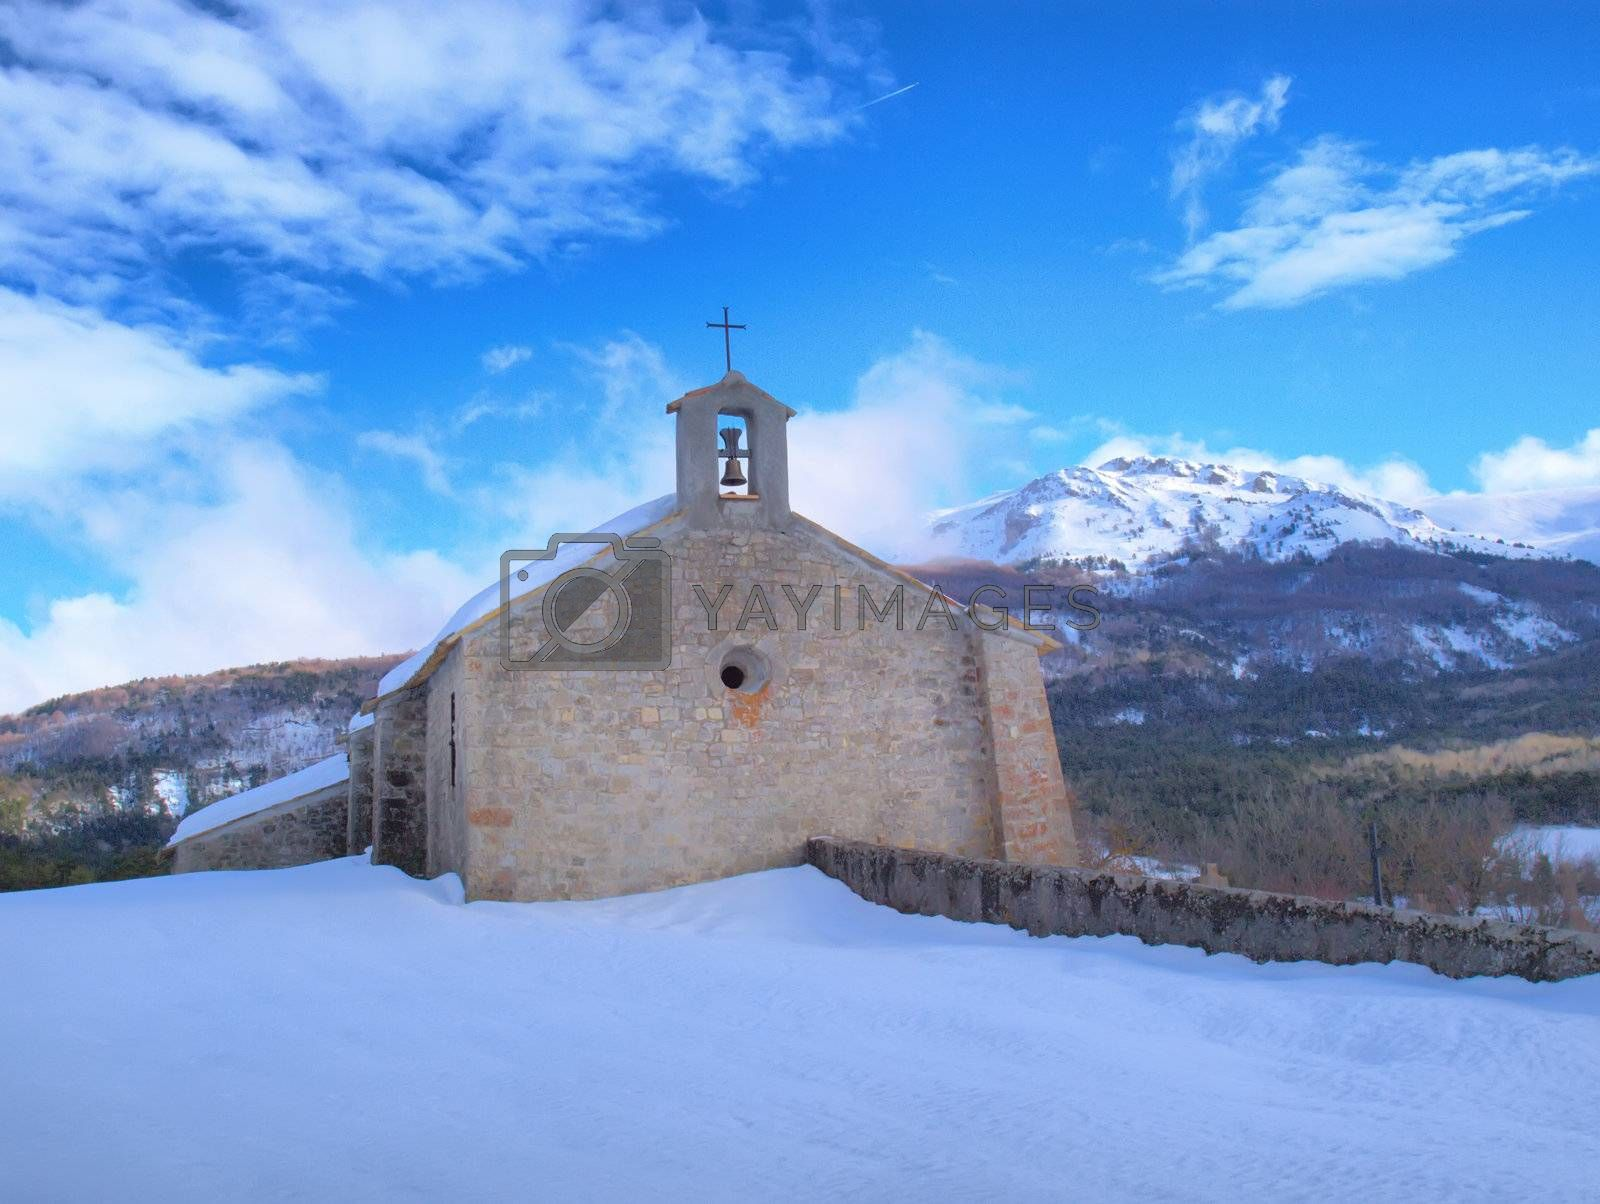 Royalty free image of Provence chapel in a snowy landscape by jbouzou